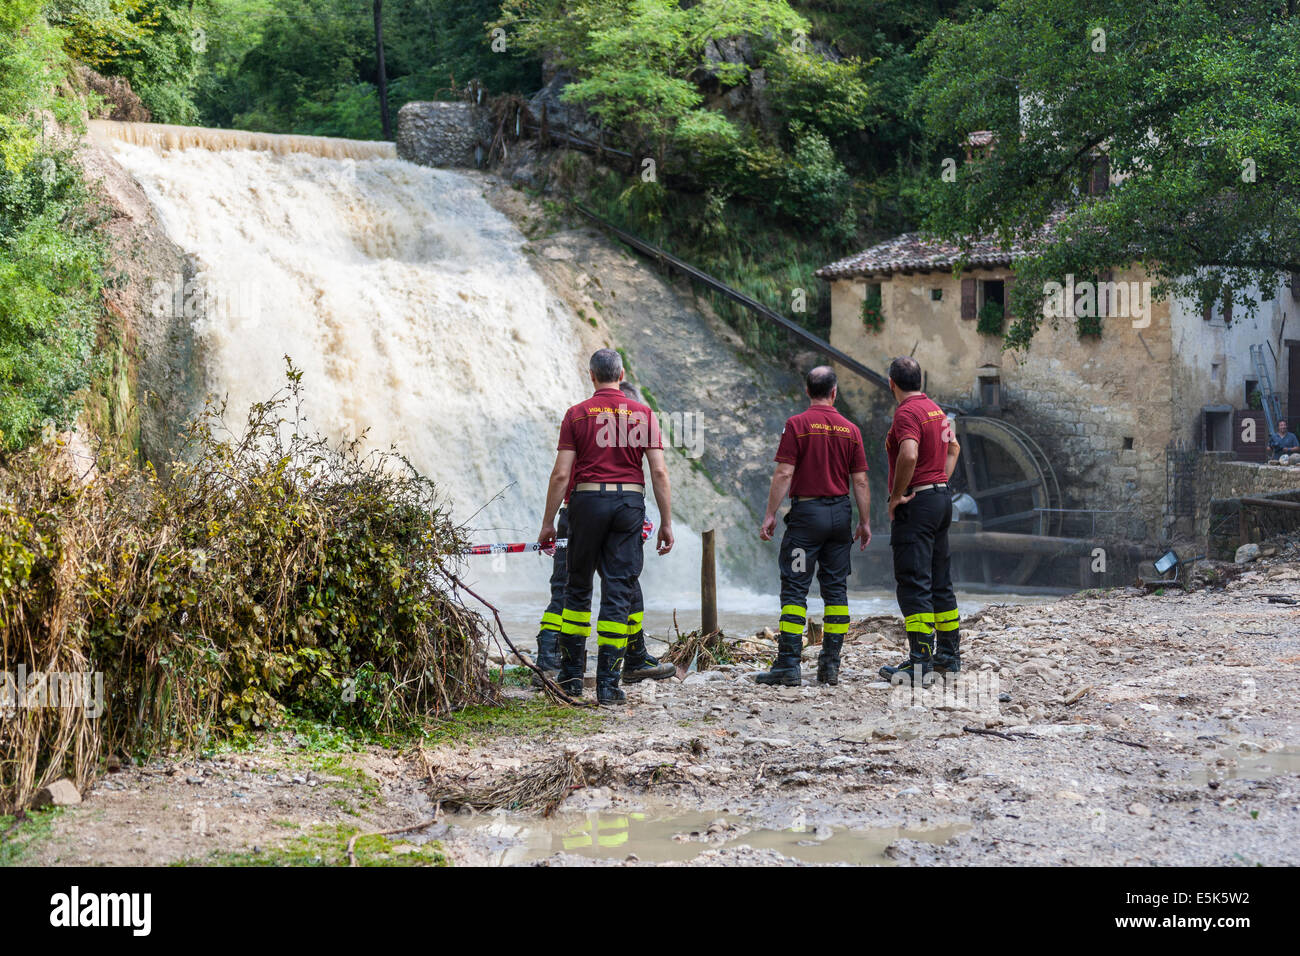 Refrontolo, Treviso, Italy. 3rd Aug, 2014. Cloudburst at Refrontolo 4 people deaths and several missing. Yesterday - Stock Image